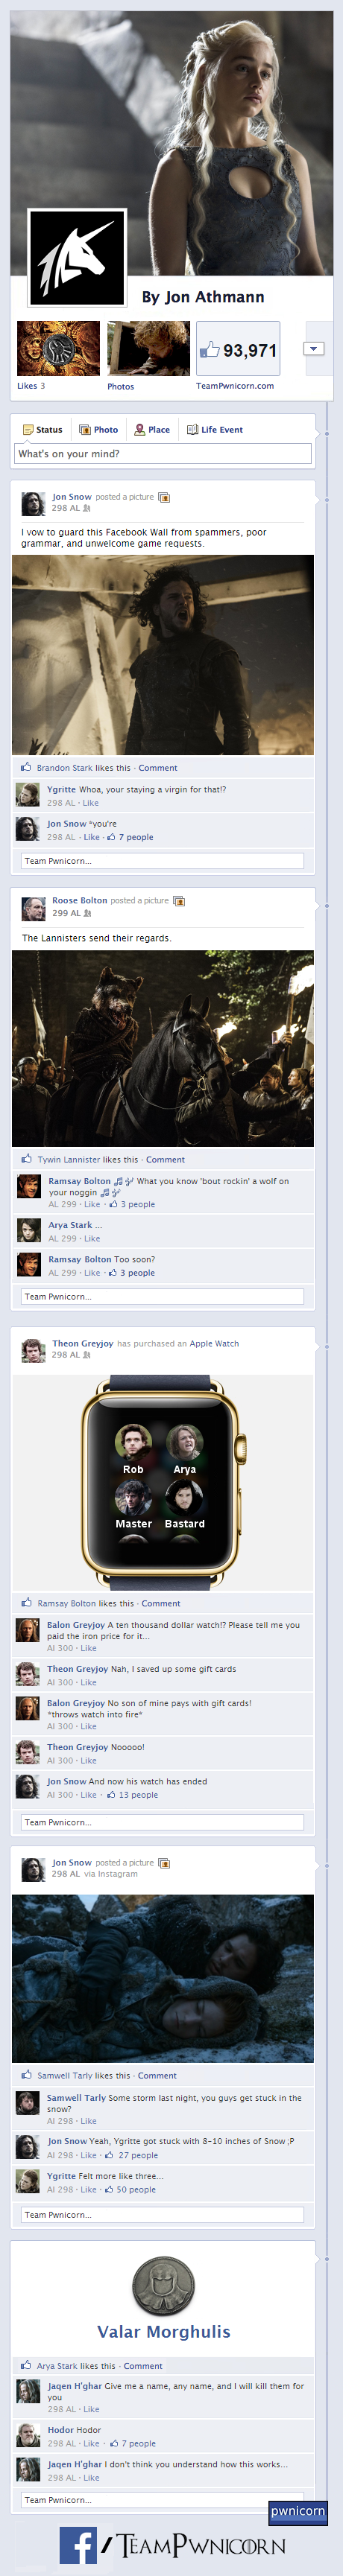 Game of Thrones on Facebook Part 2